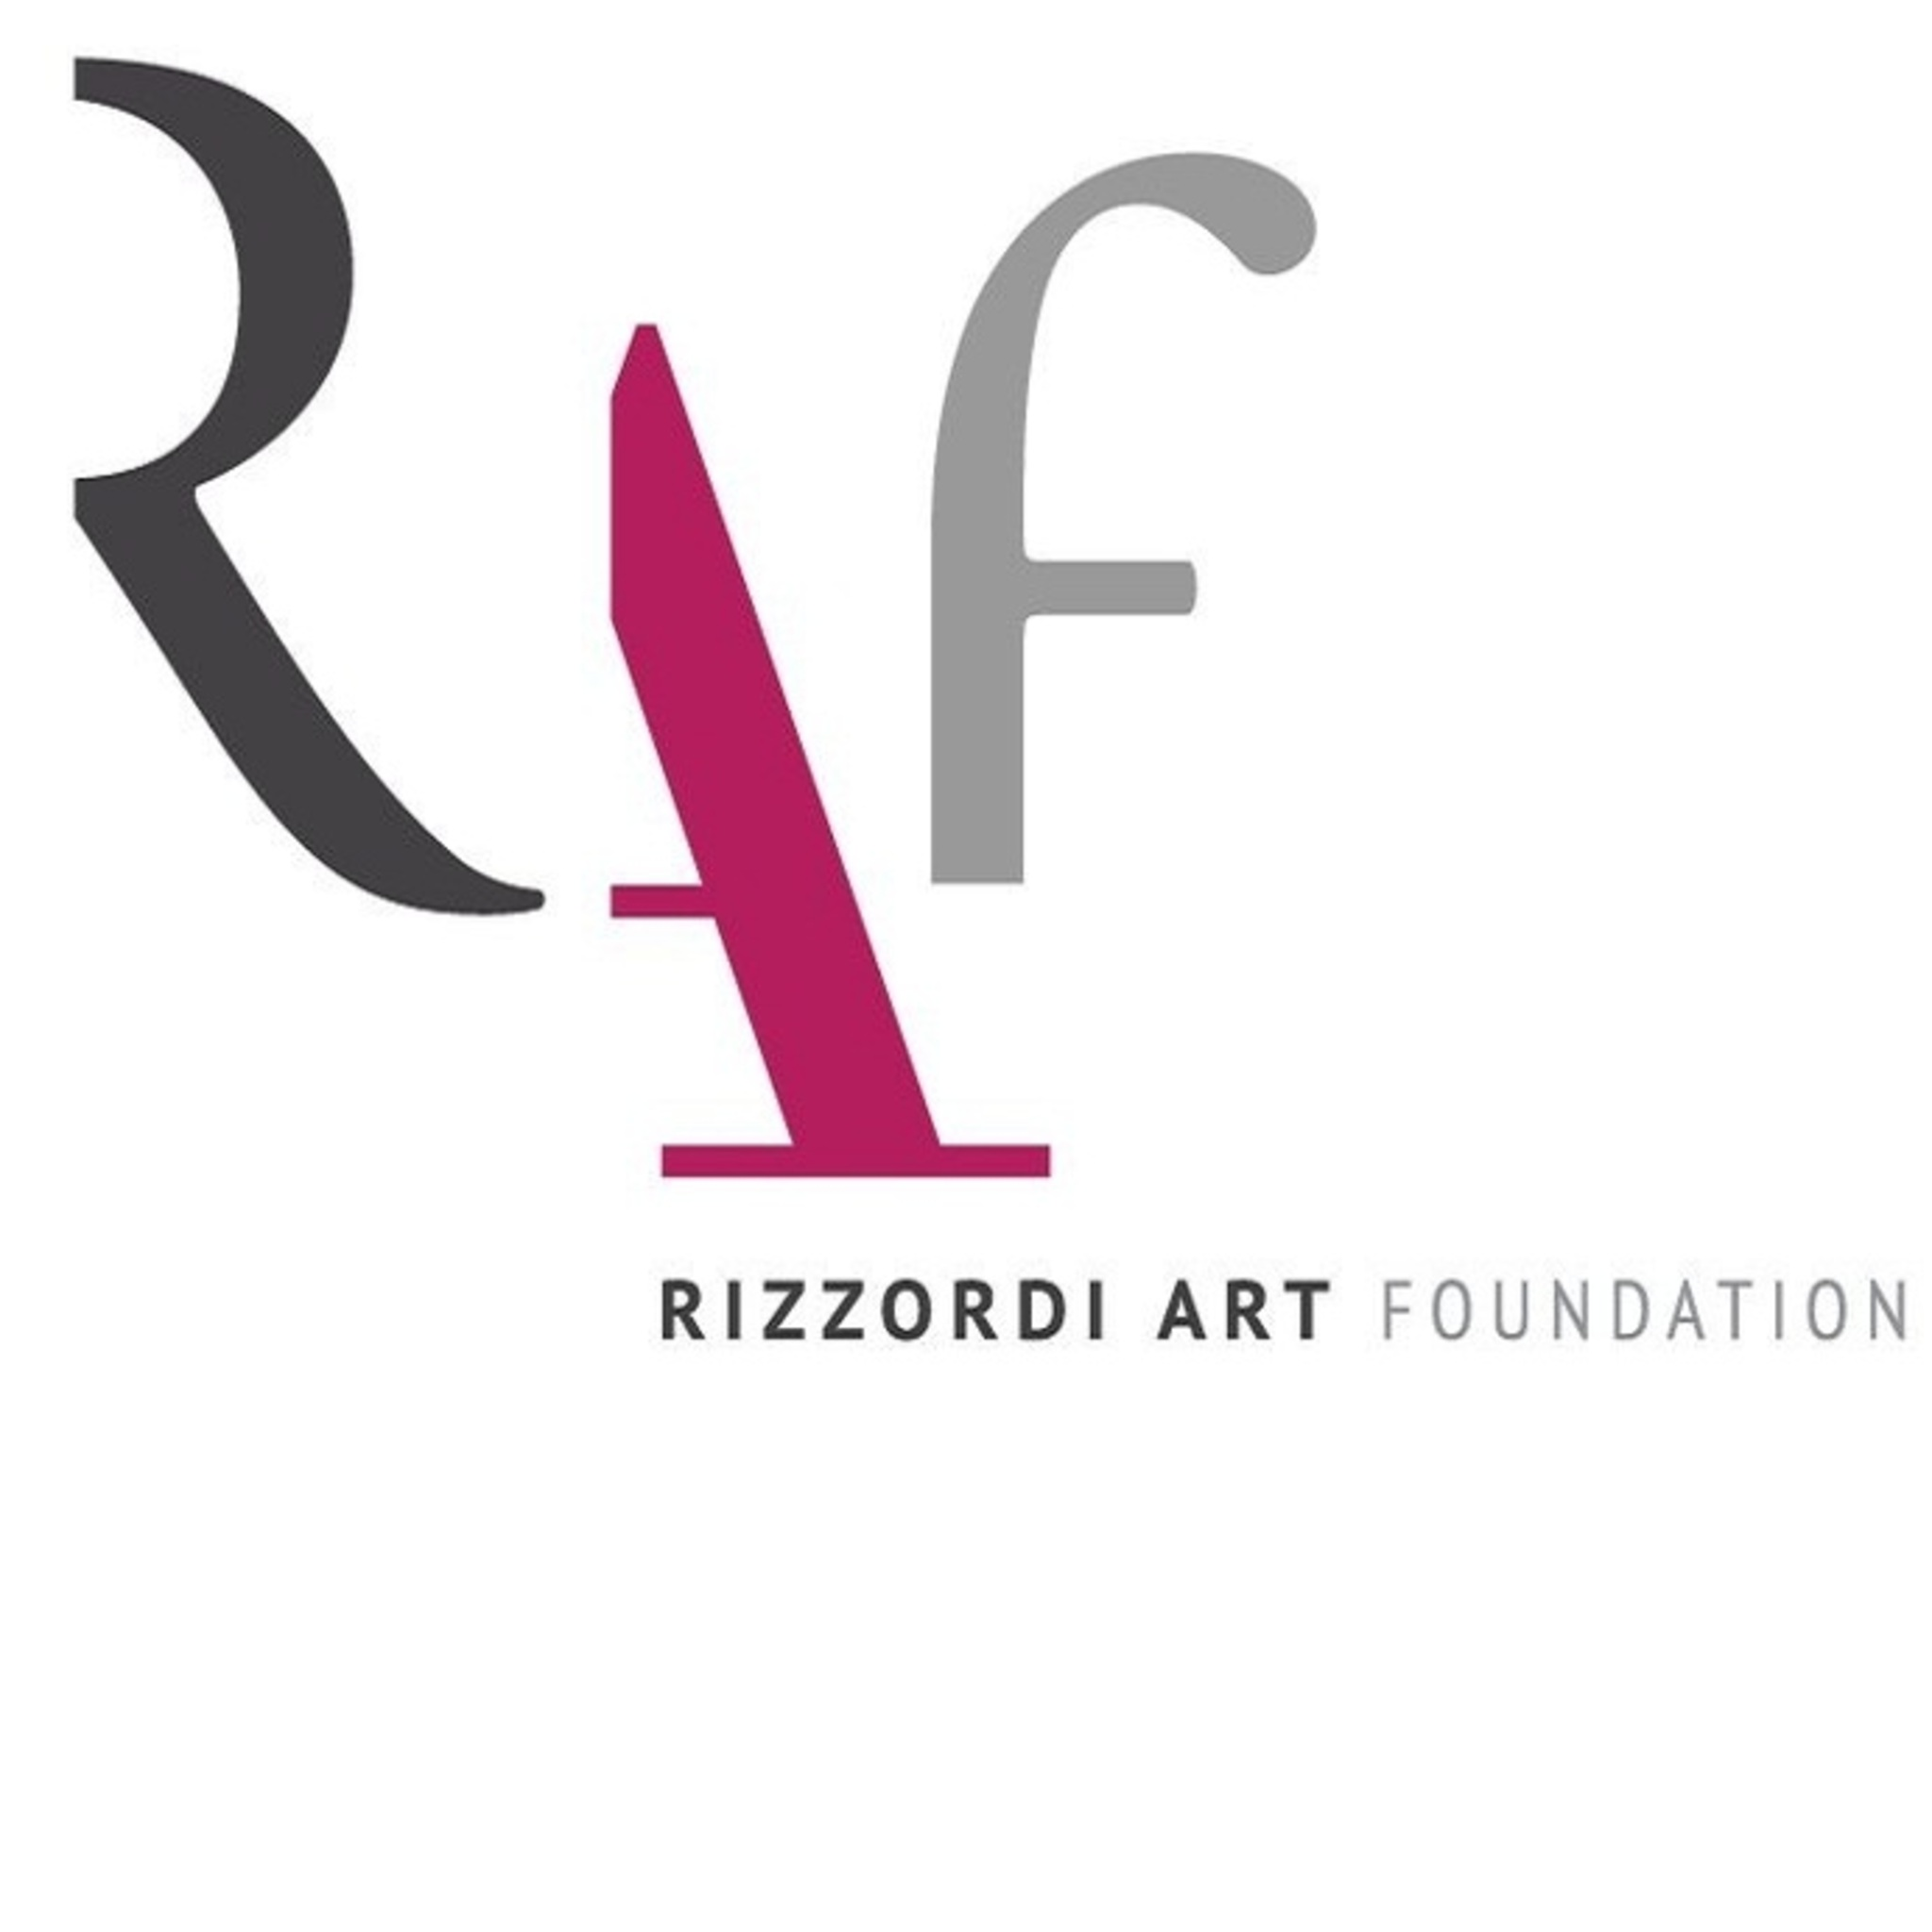 Rizzordi Art Foundation